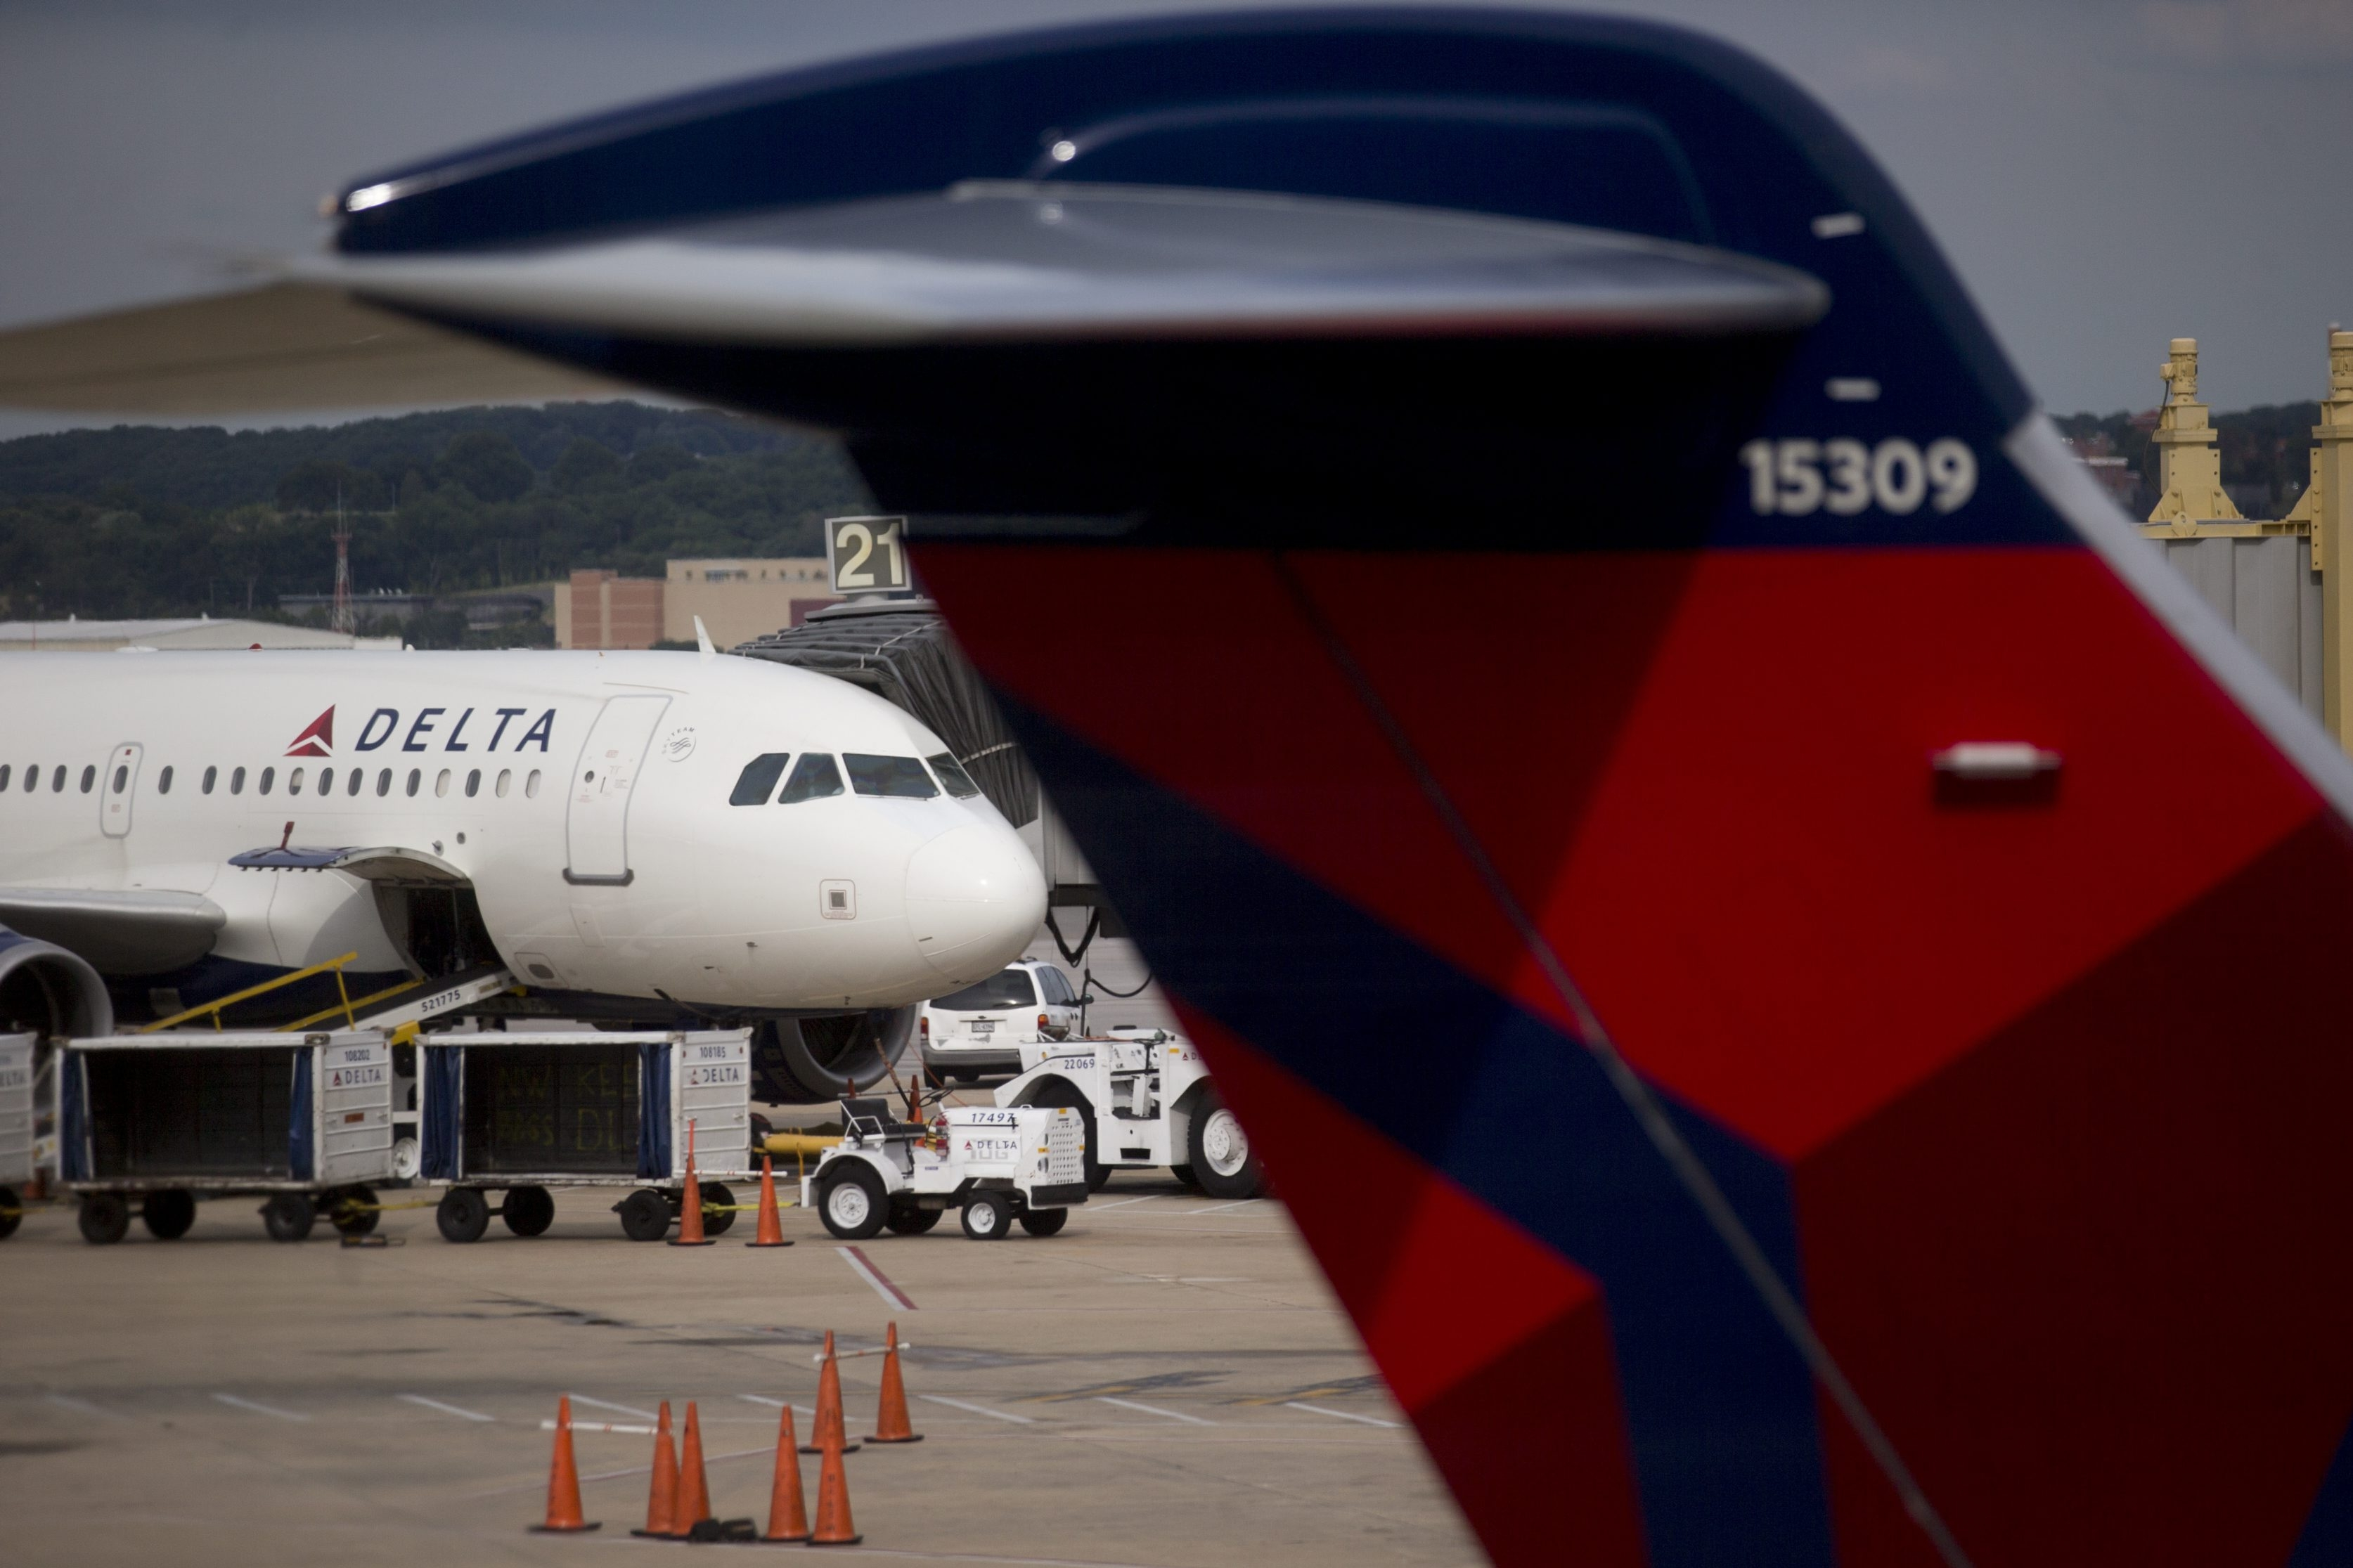 A Delta Air Lines plane sits parked at a gate of Ronald Reagan National Airport in Washington, D.C. Delta agreed to retain its own international flights and not to outsource trips to partner Virgin Atlantic.